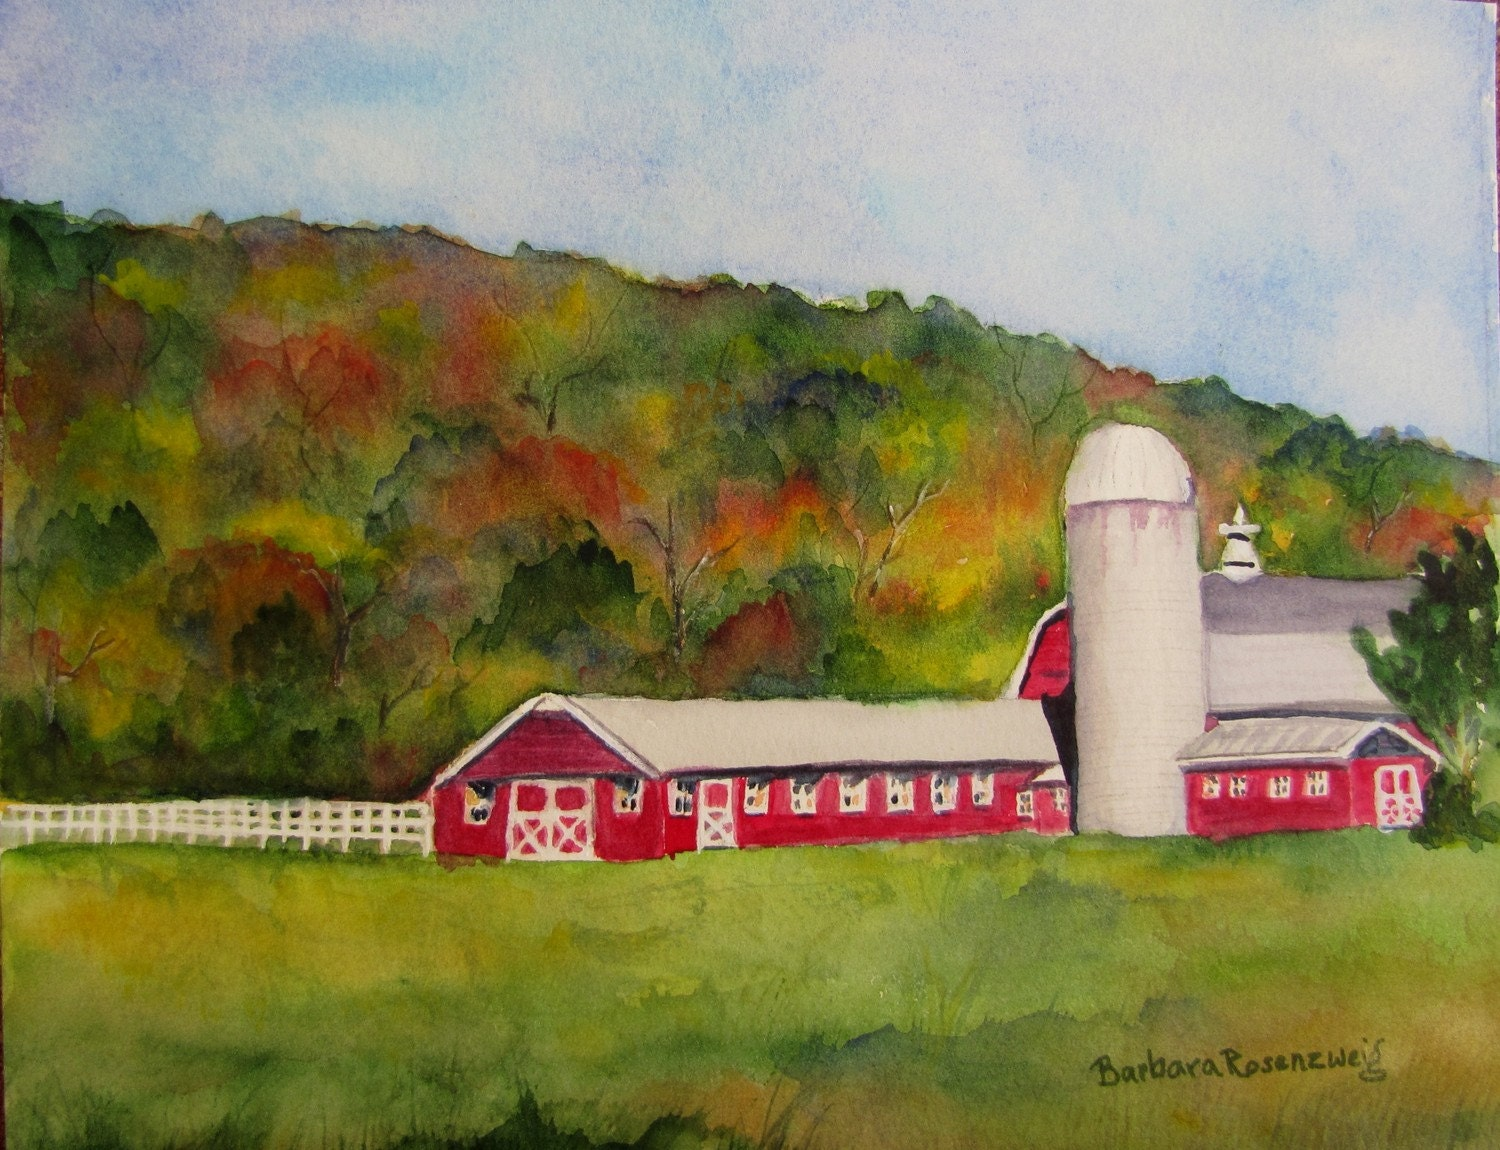 Original Barn Berkshire Landscape Art: Watercolor Painting 8x10